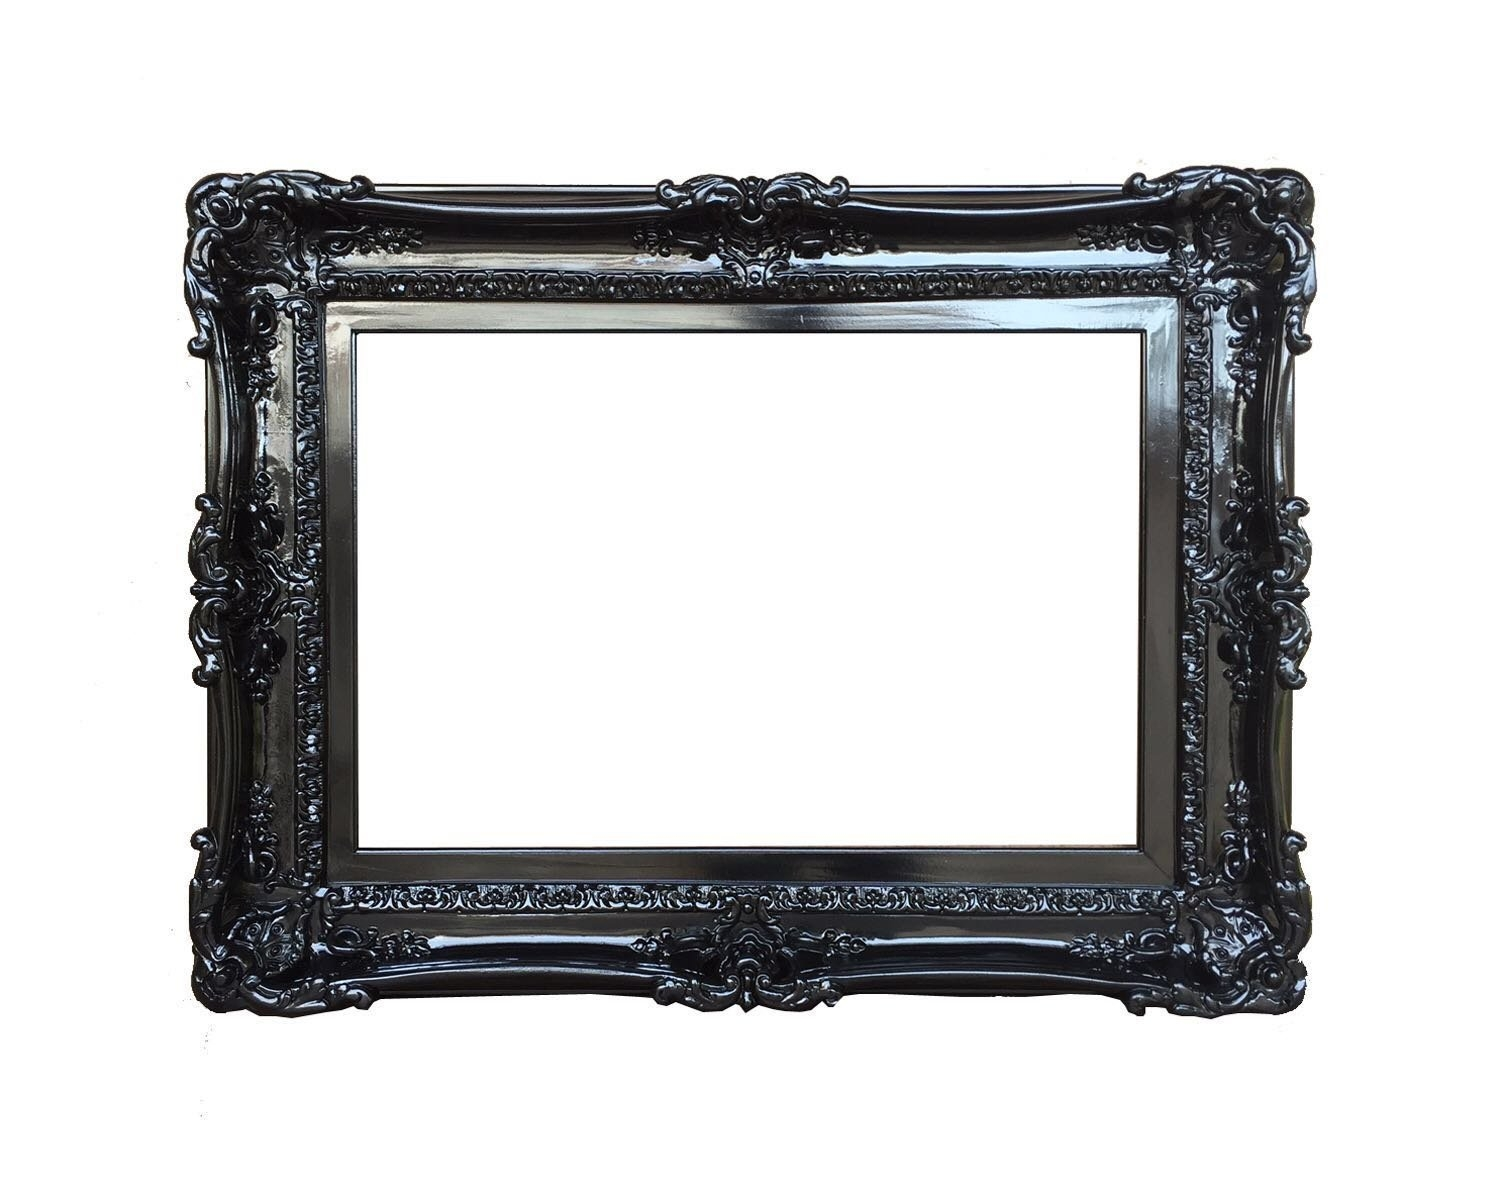 Amazon 20×24 Baroque Black Frame Ornate Wall Mirror Intended For Ornate Black Mirror (Image 1 of 15)